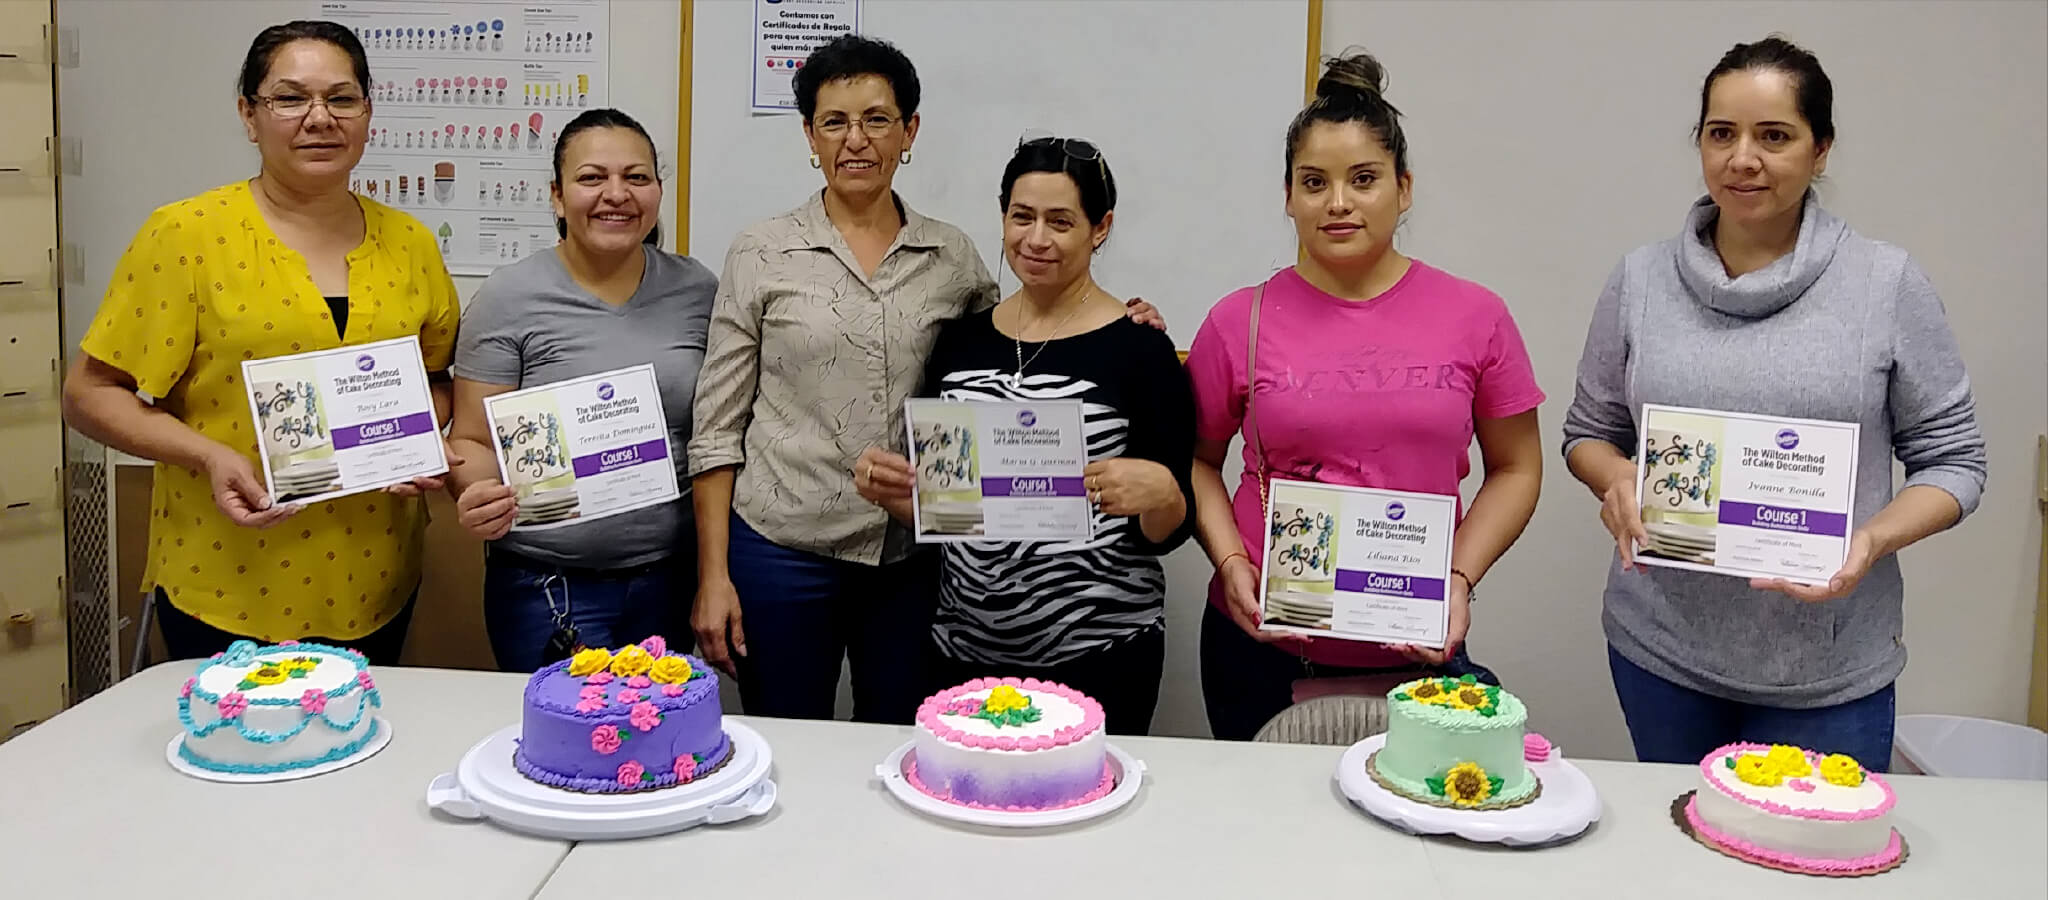 Cake decorating classes in Albuquerque, NM.